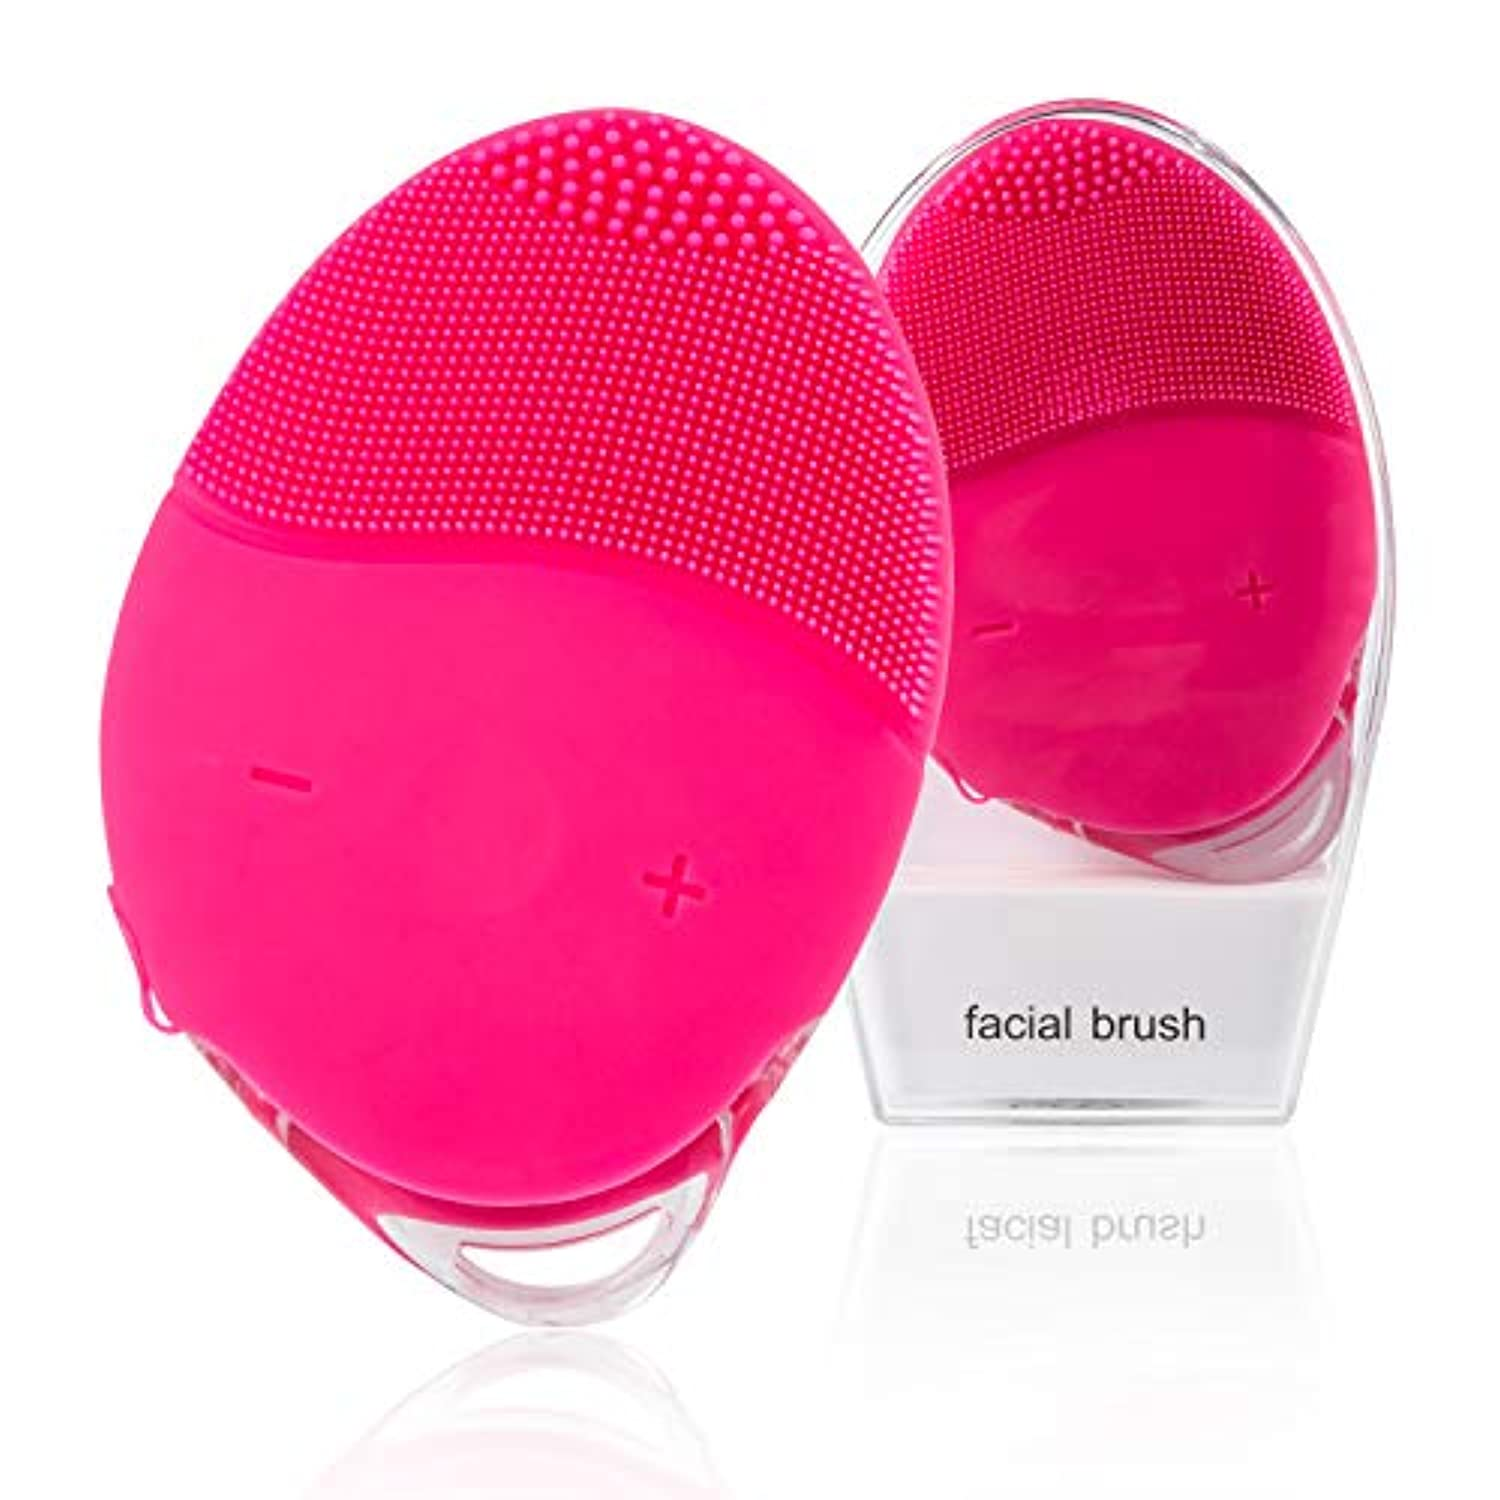 Facial Cleansing Brush, H/E Waterproof Portable Electric Cleanser, Rechargeable Sonic Silicone Face Scrub Device, Face Massage Brush for all Skin Type (Rose)